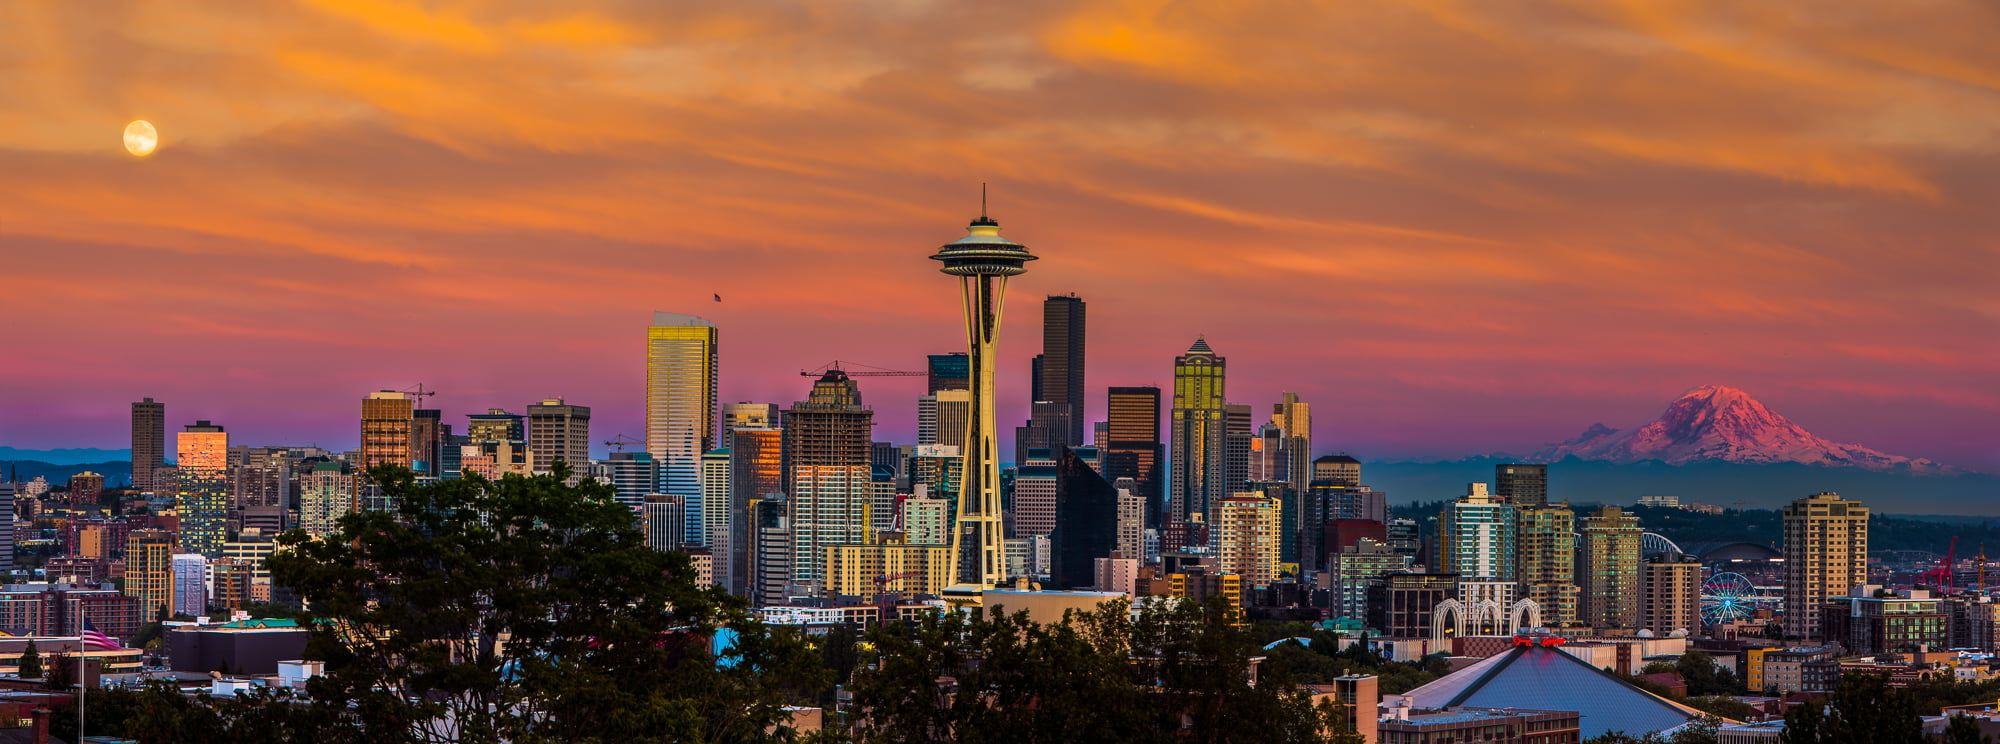 Seattle Skyline Wallpapers Top Free Seattle Skyline